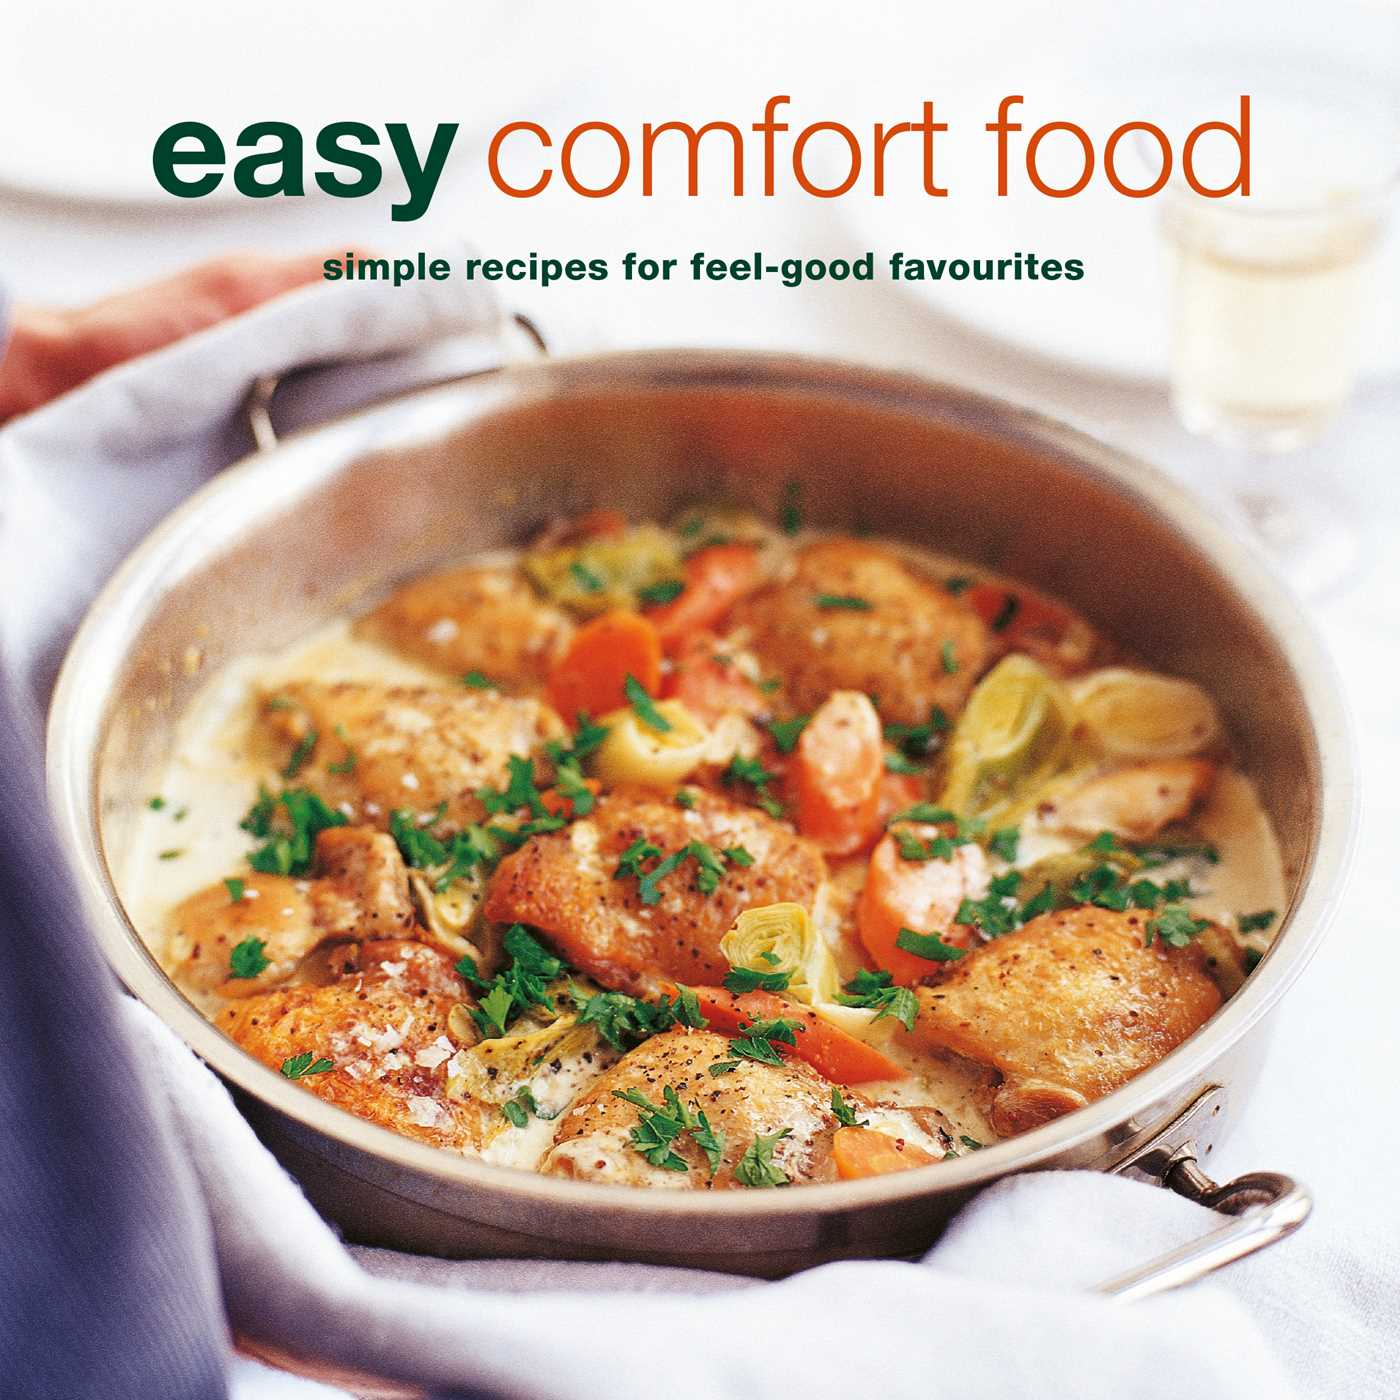 Easy comfort food book by to be announced official publisher book cover image jpg easy comfort food forumfinder Choice Image